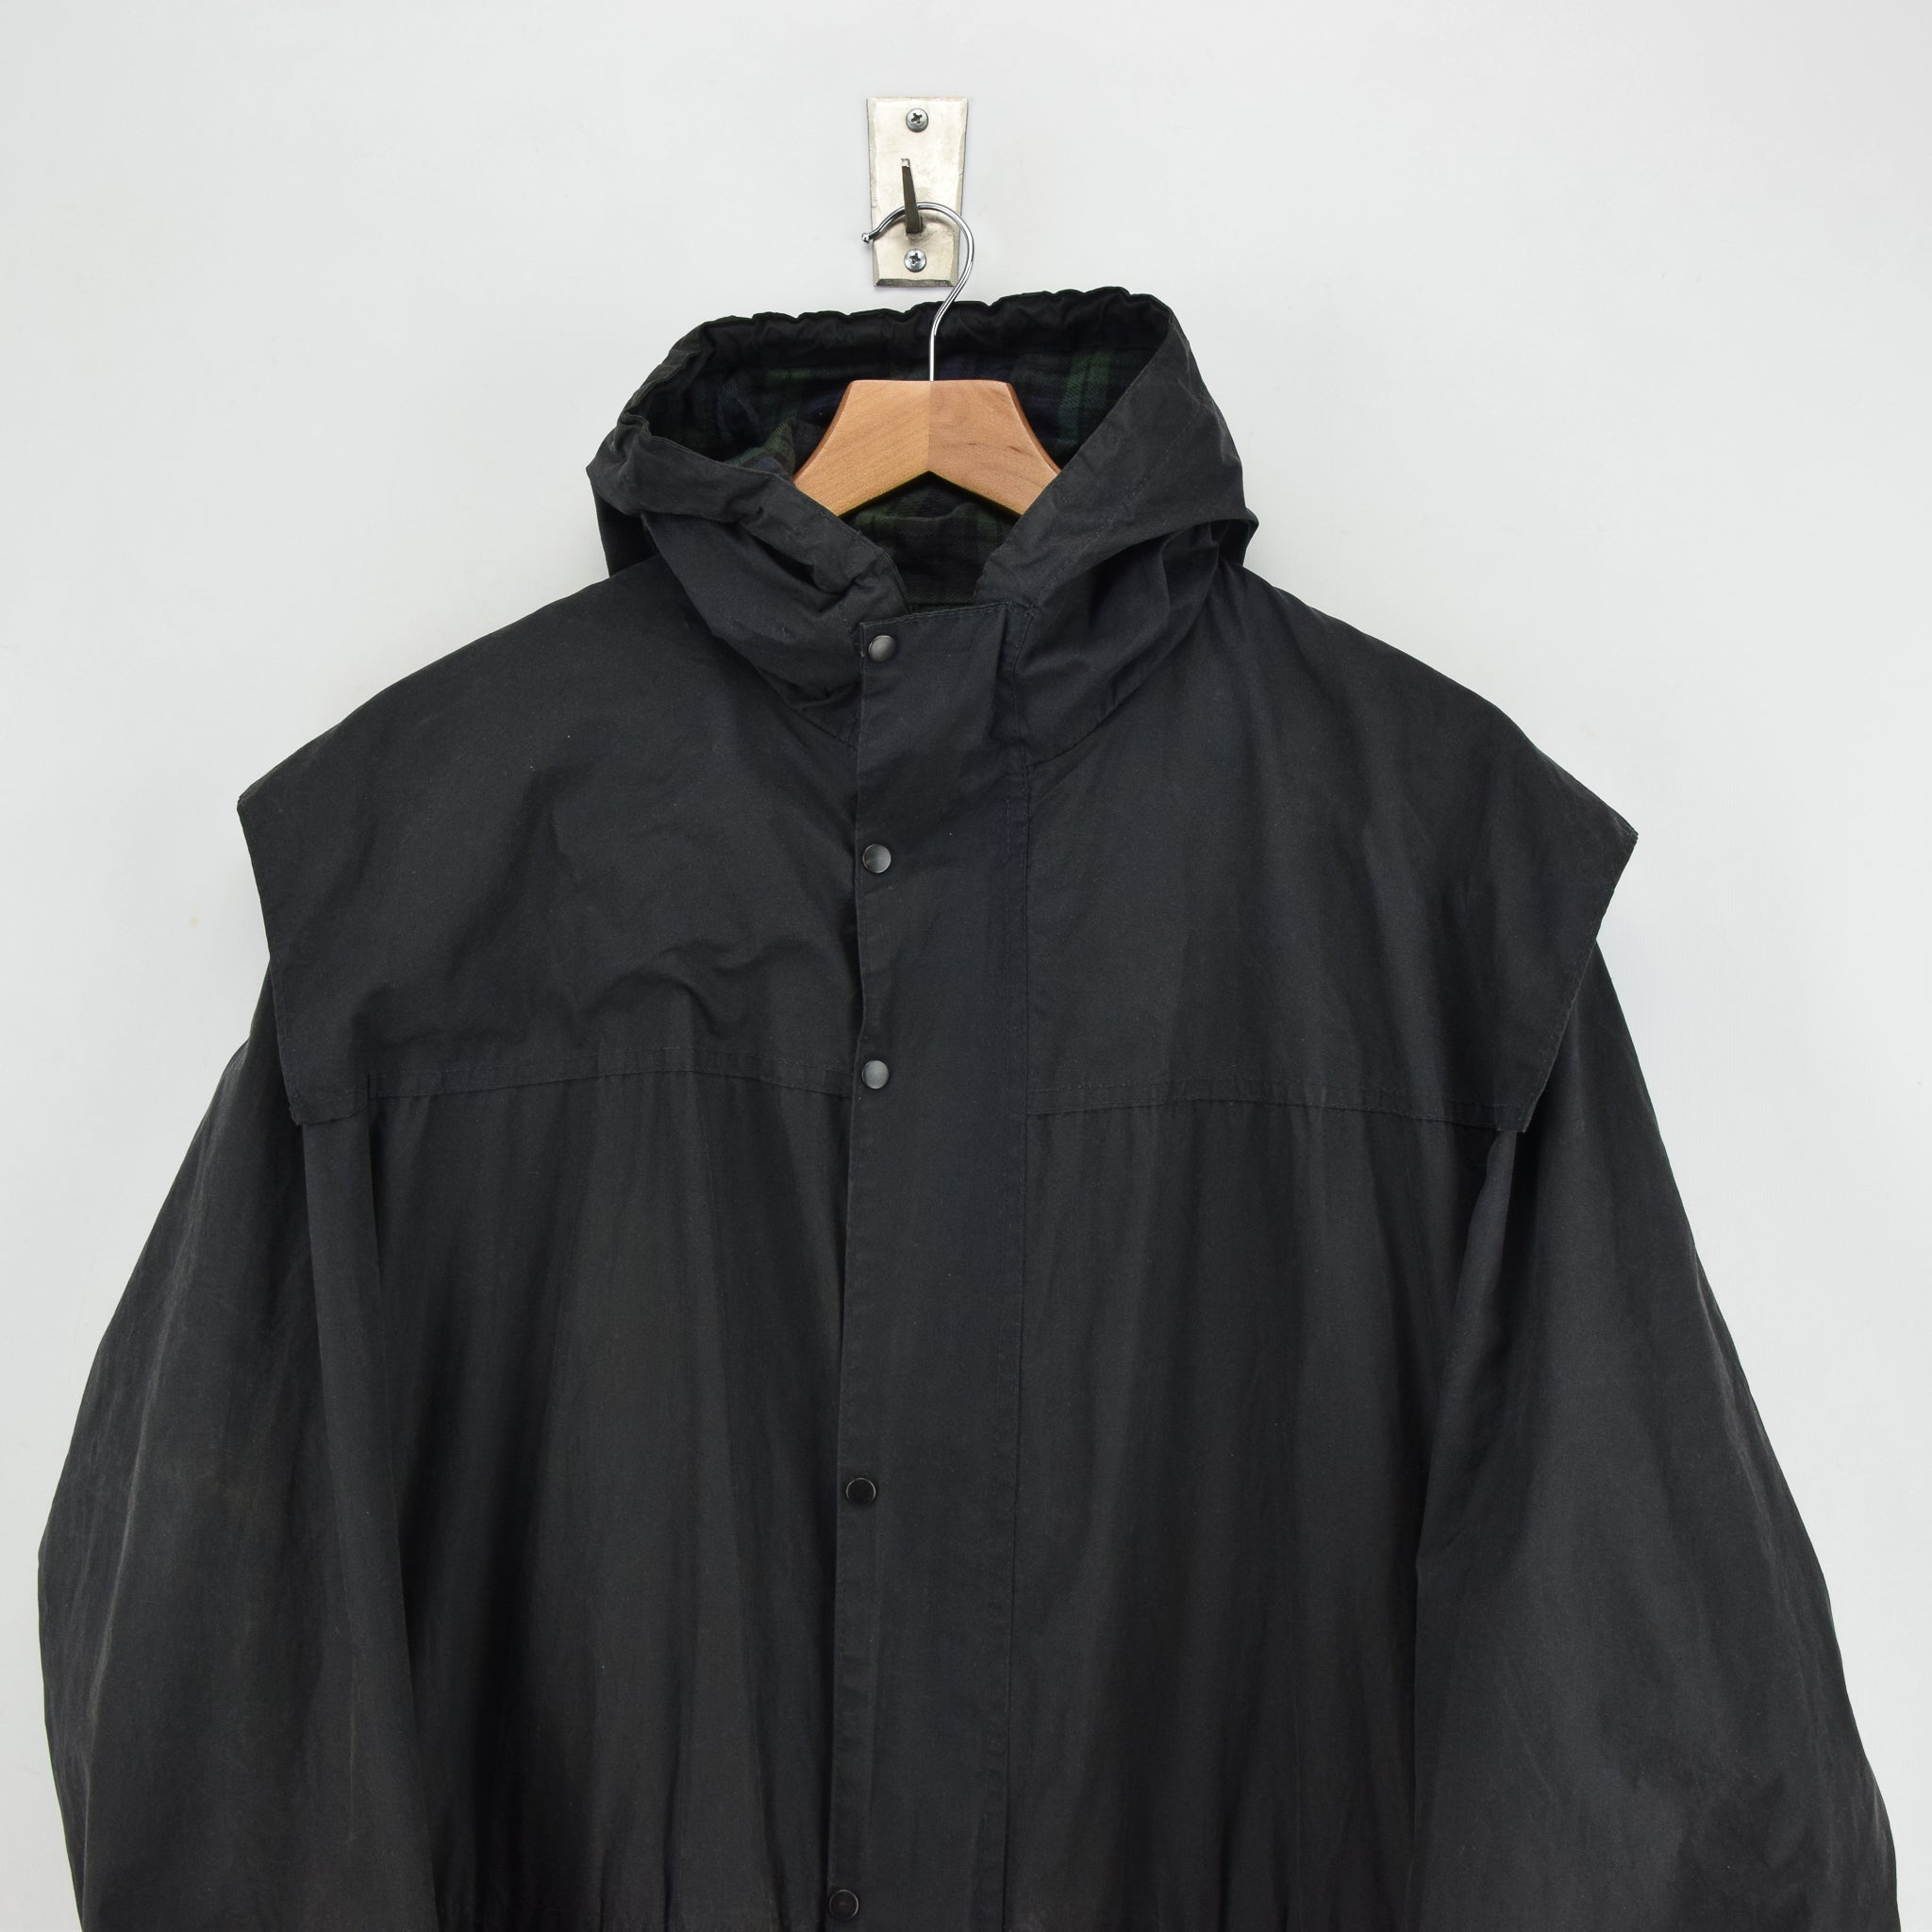 Vintage Barbour A6 Lined Durham Black Hooded Wax Jacket Coat Made In UK L chest